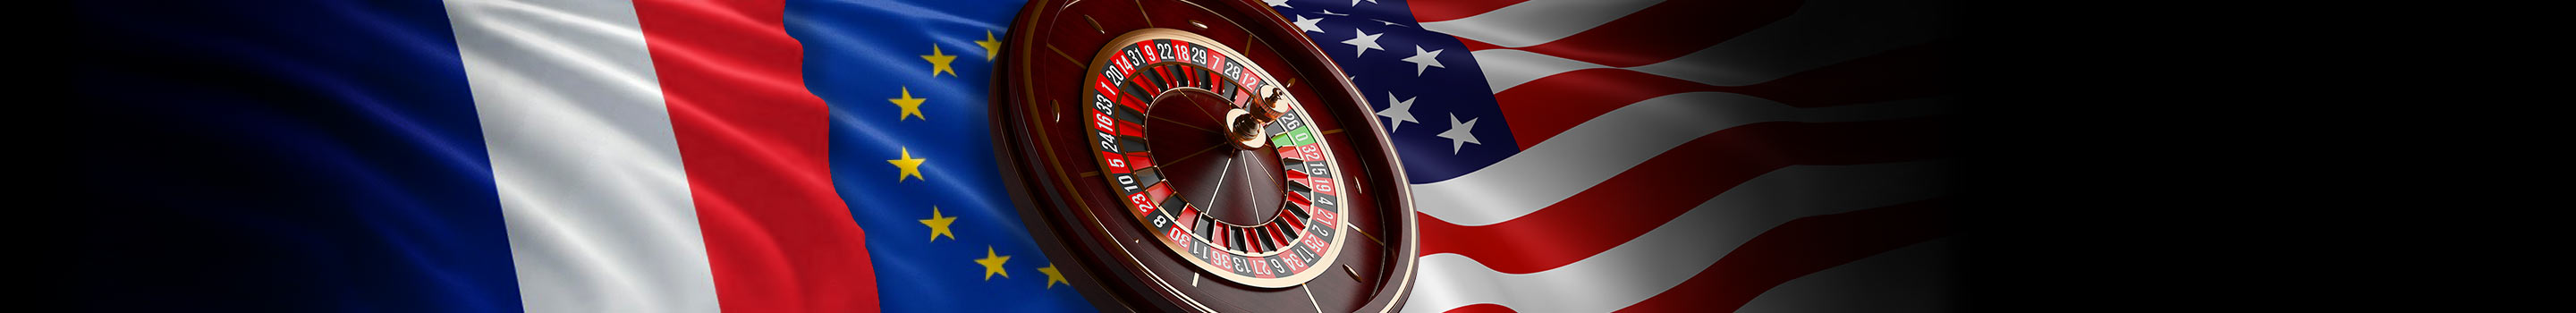 Differences between roulette variants